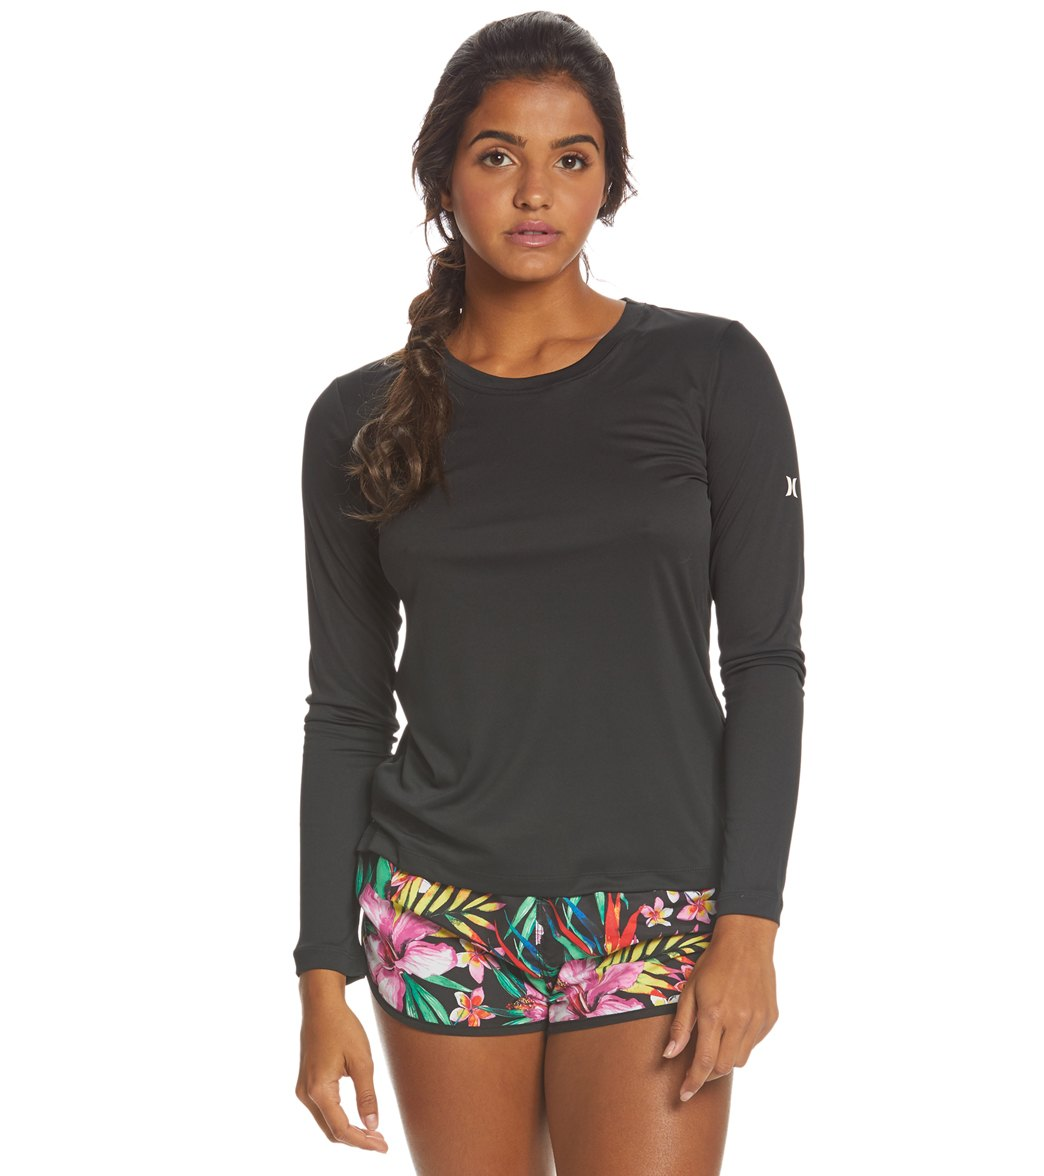 fef654686 Hurley Women's Quick Dry Long Sleeve Tee at SwimOutlet.com